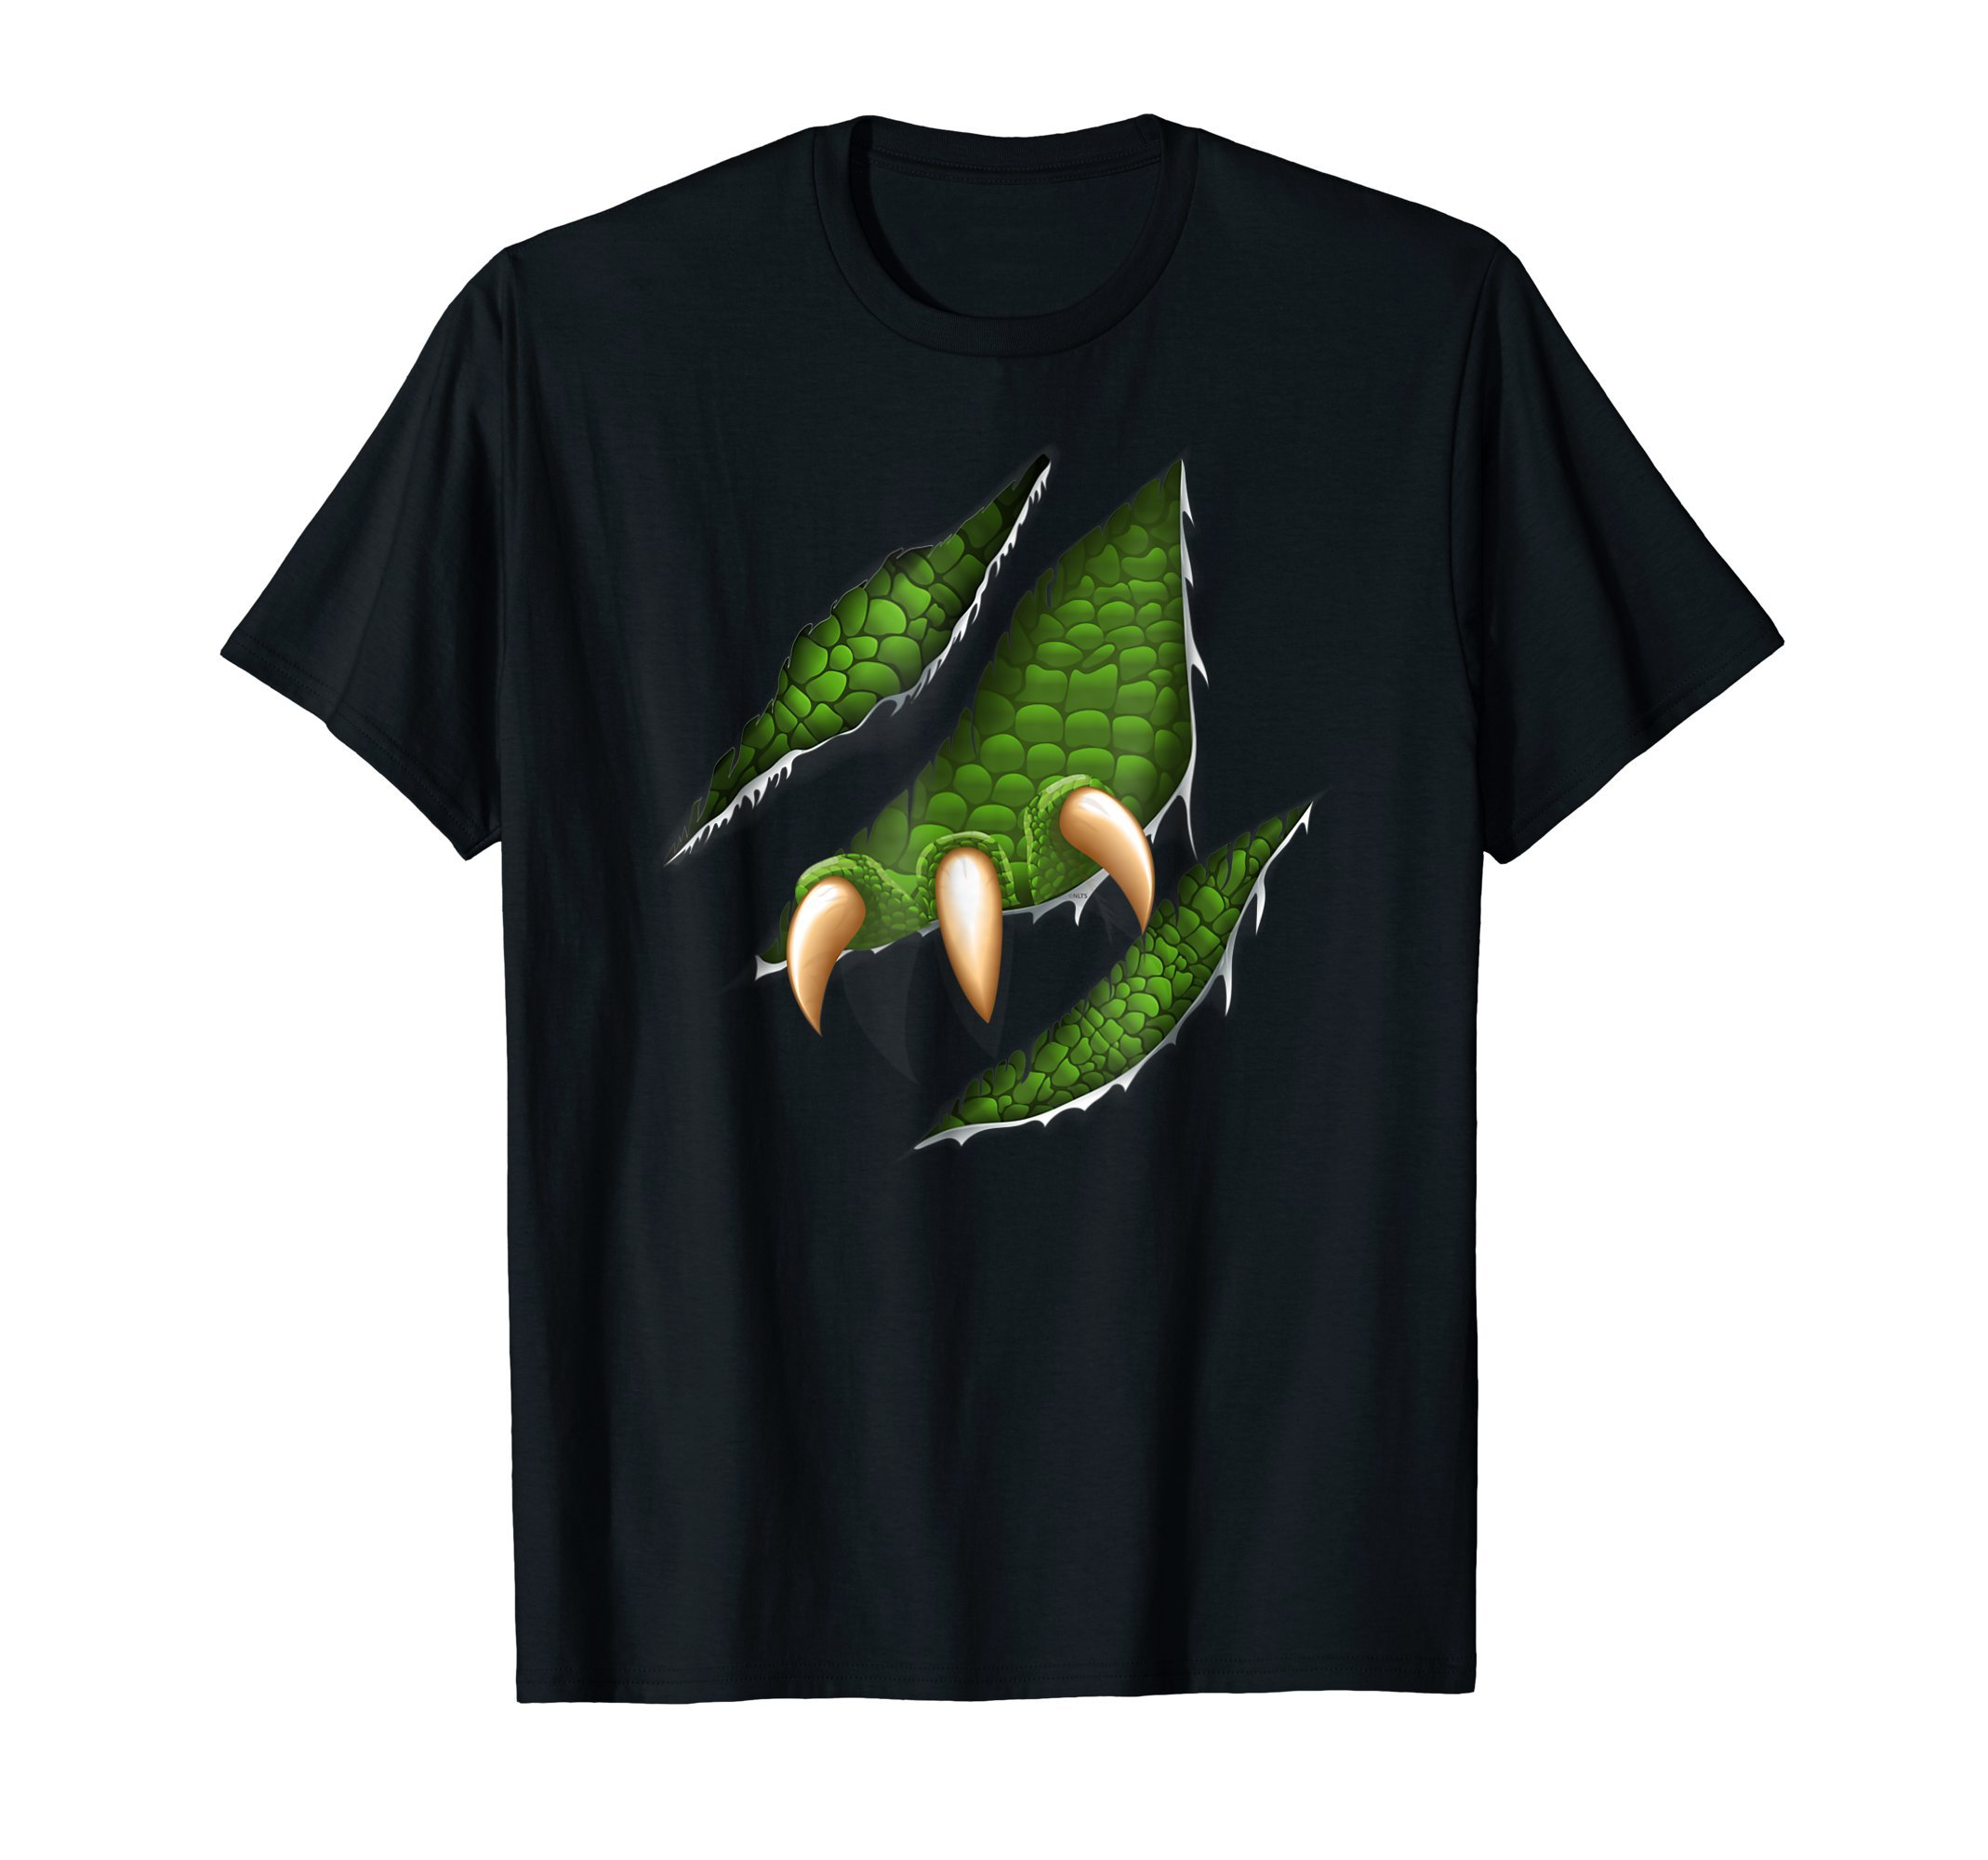 Men-Alien-Reptile-Ragged-Halloween-costume-T-Shirt-Tee-Gift